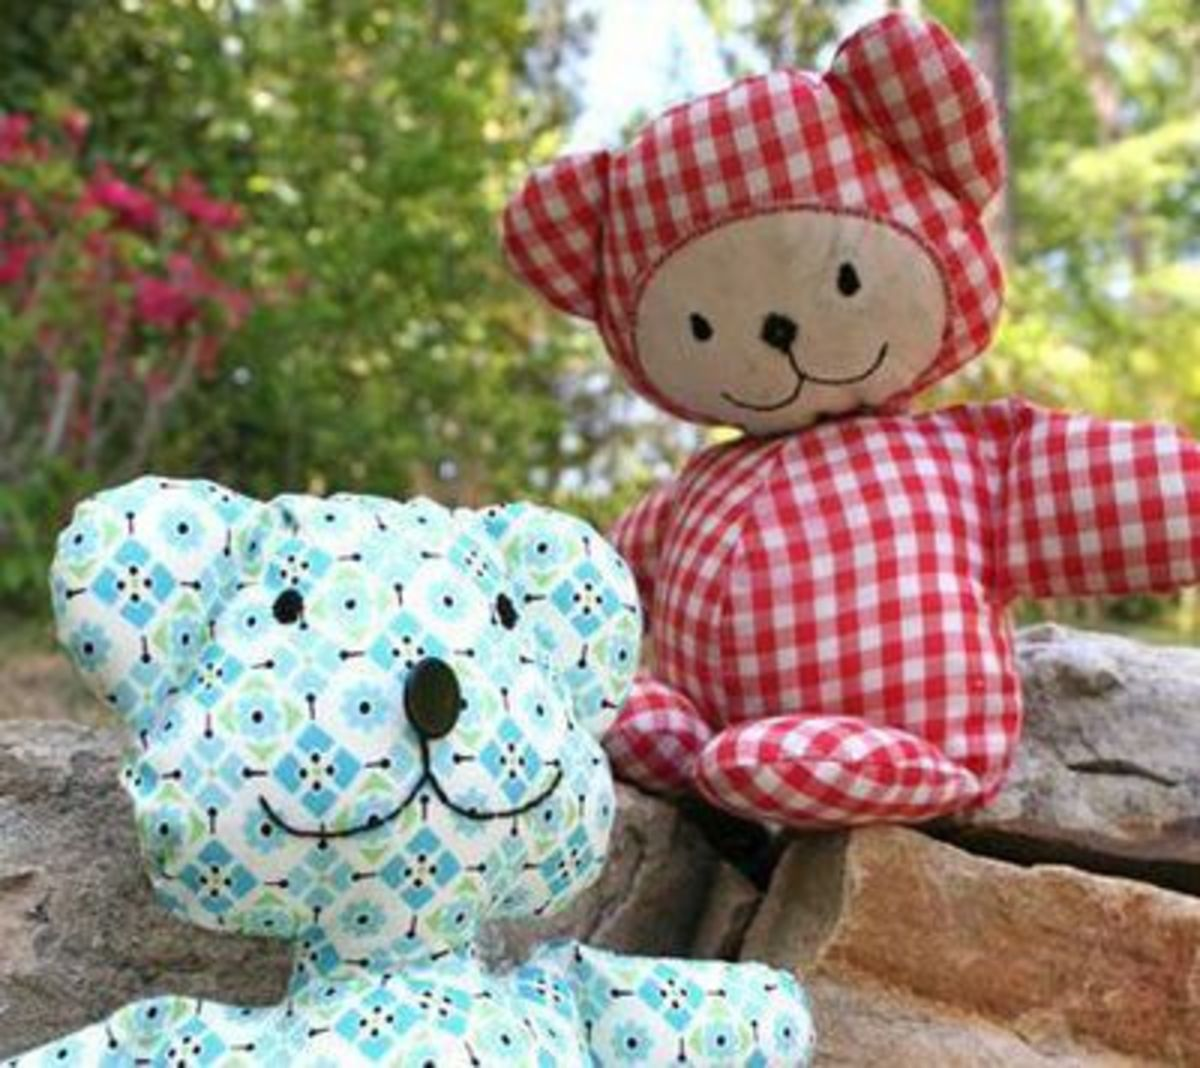 32 All Kinds of Bears Craft Ideas